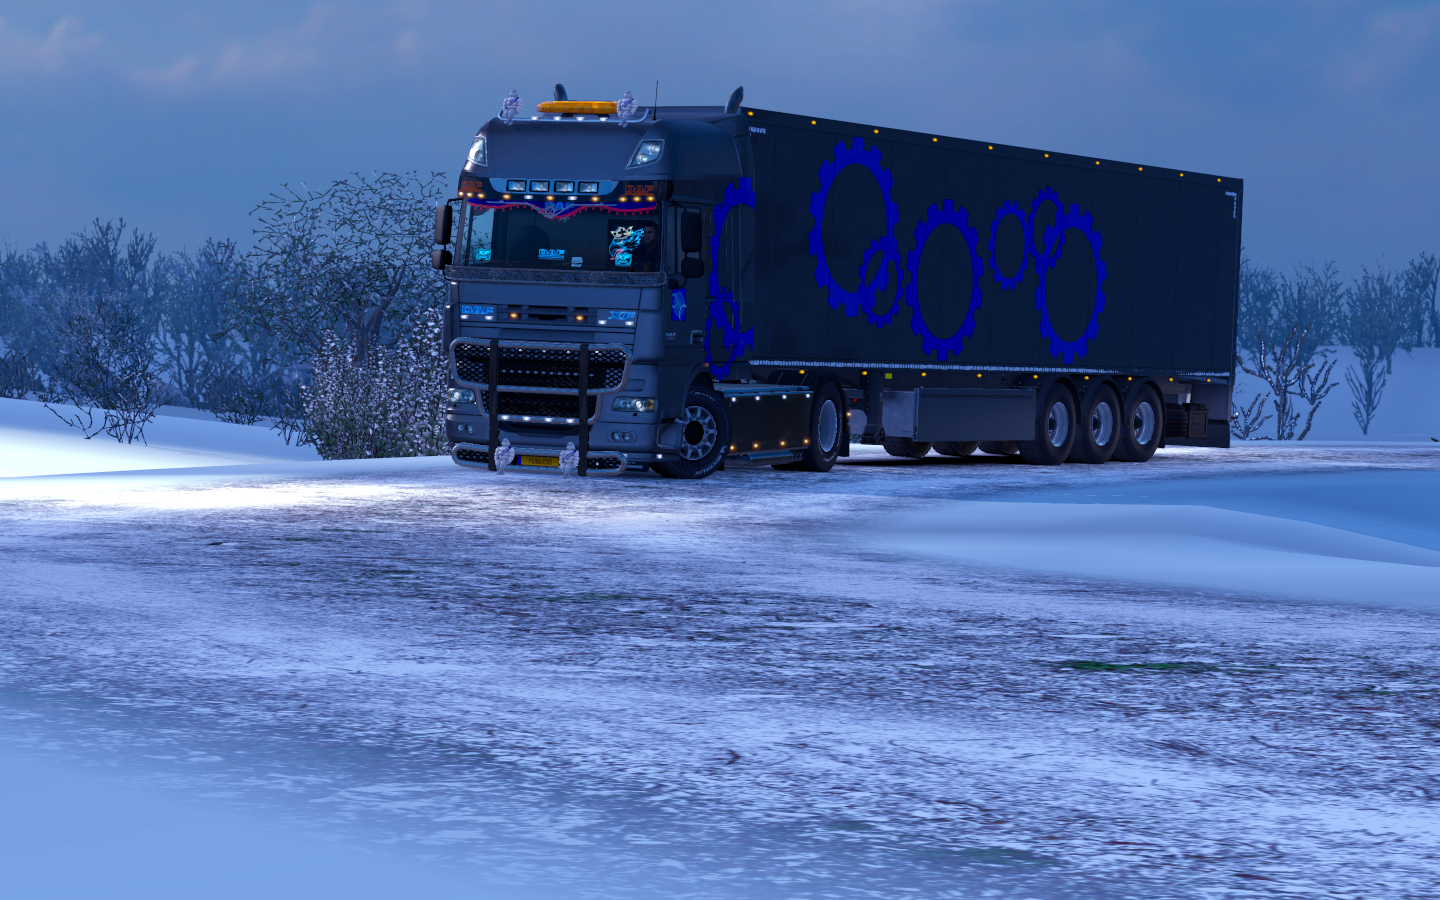 ets2_20190122_153017_00.png